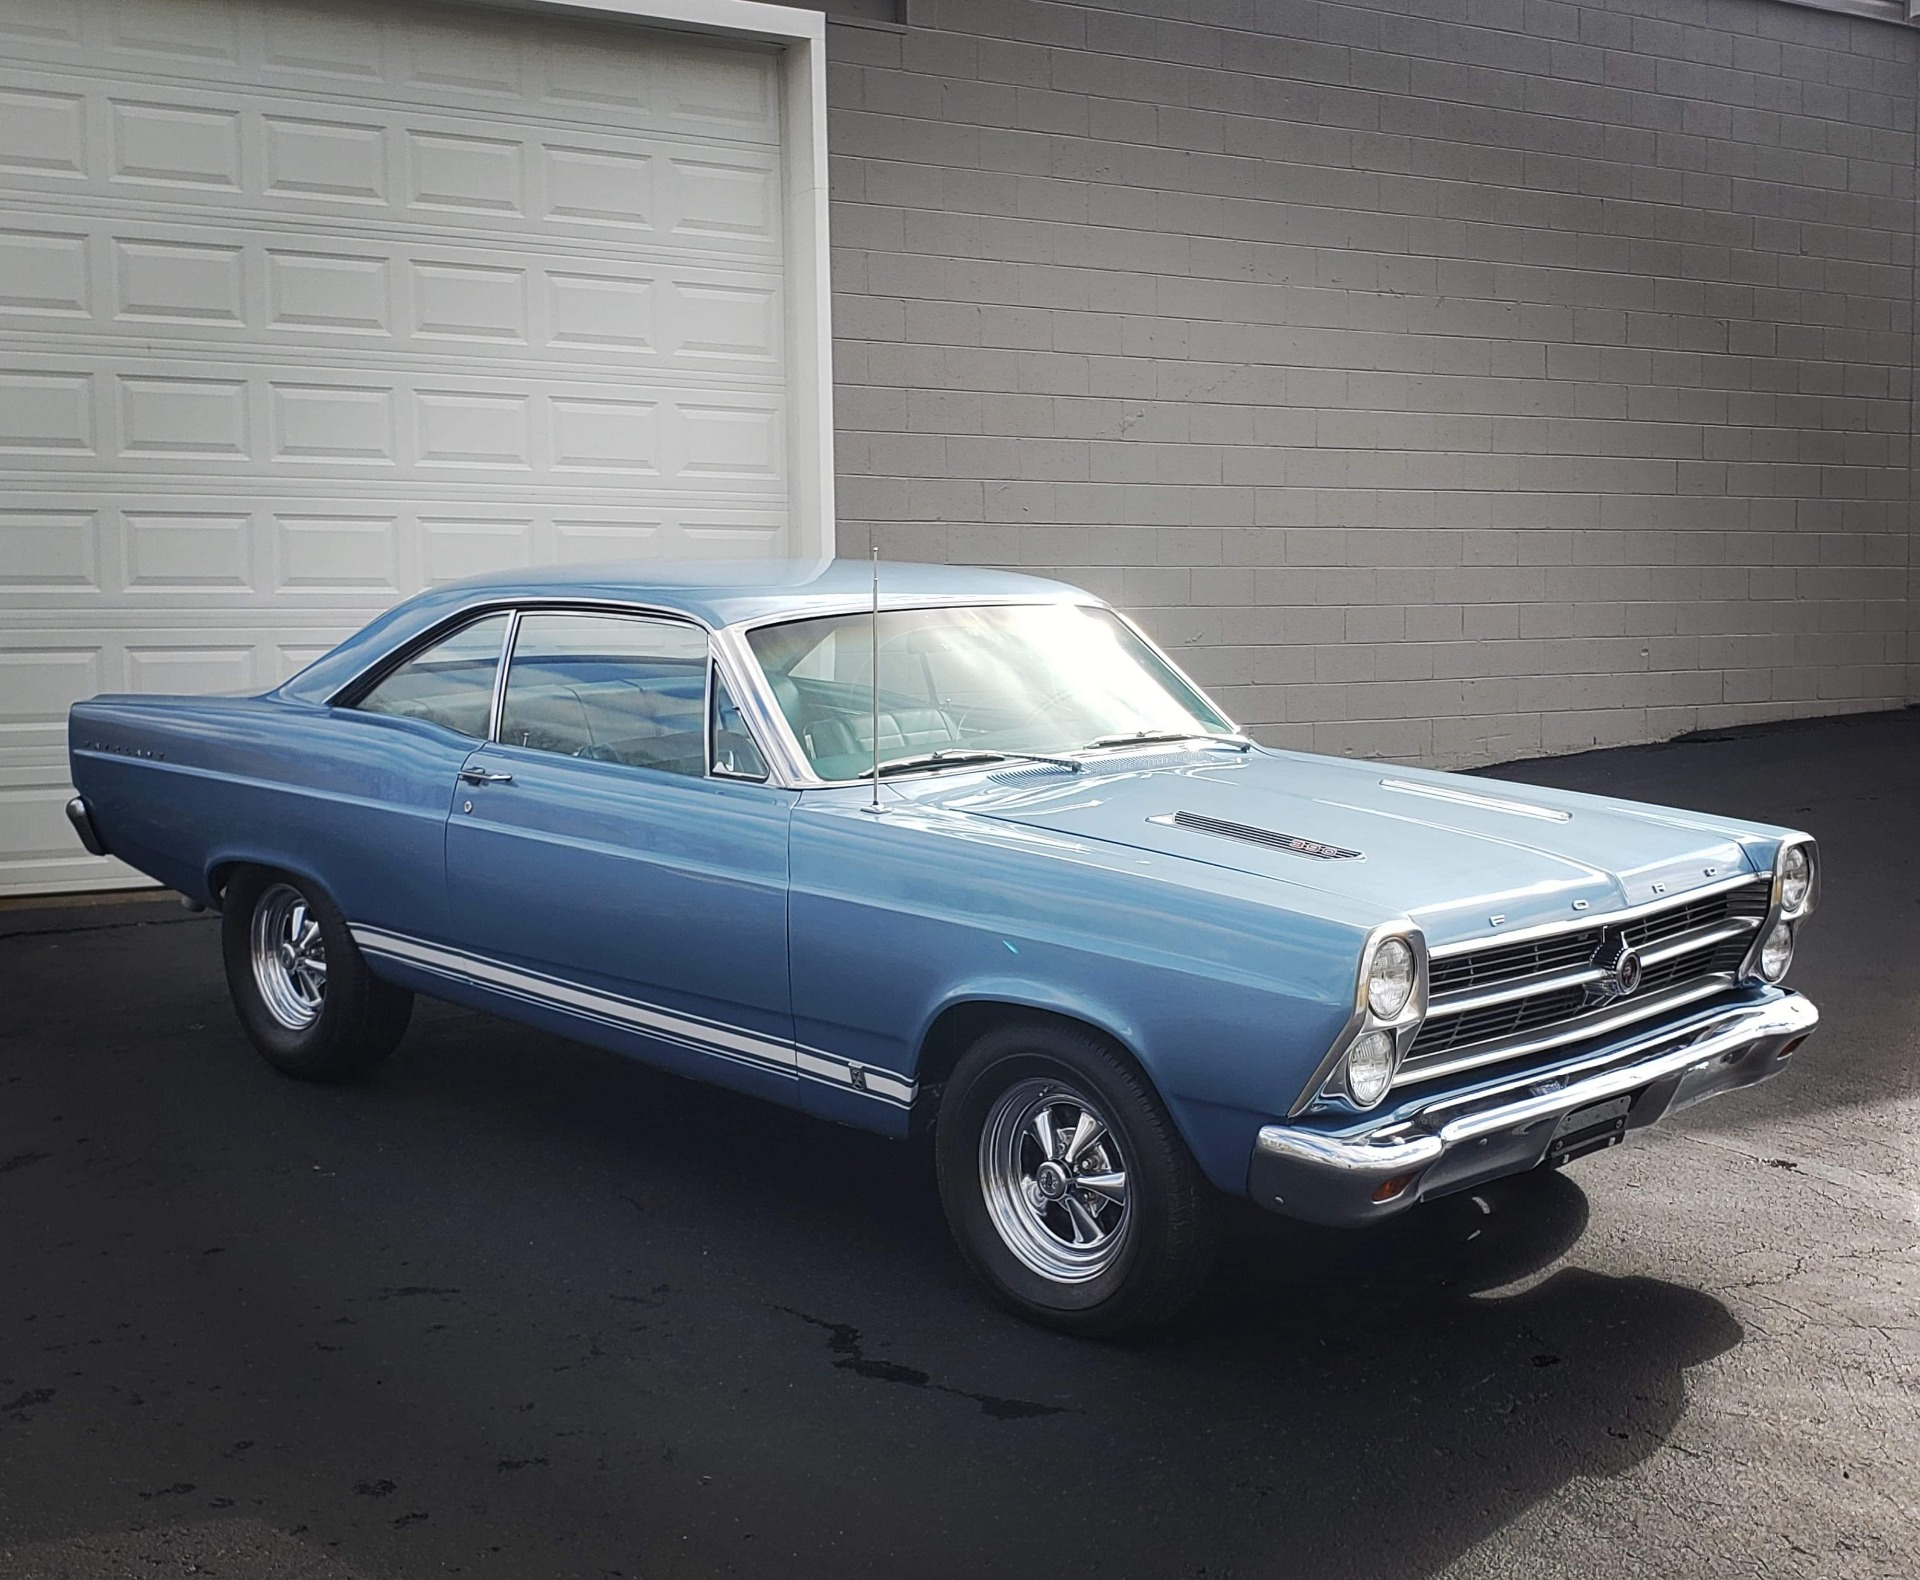 Used 1966 Ford Fairlane - S CODE GTA - 390 ENGINE - SUPER CLEAN - SEE VIDEO - | Mundelein, IL